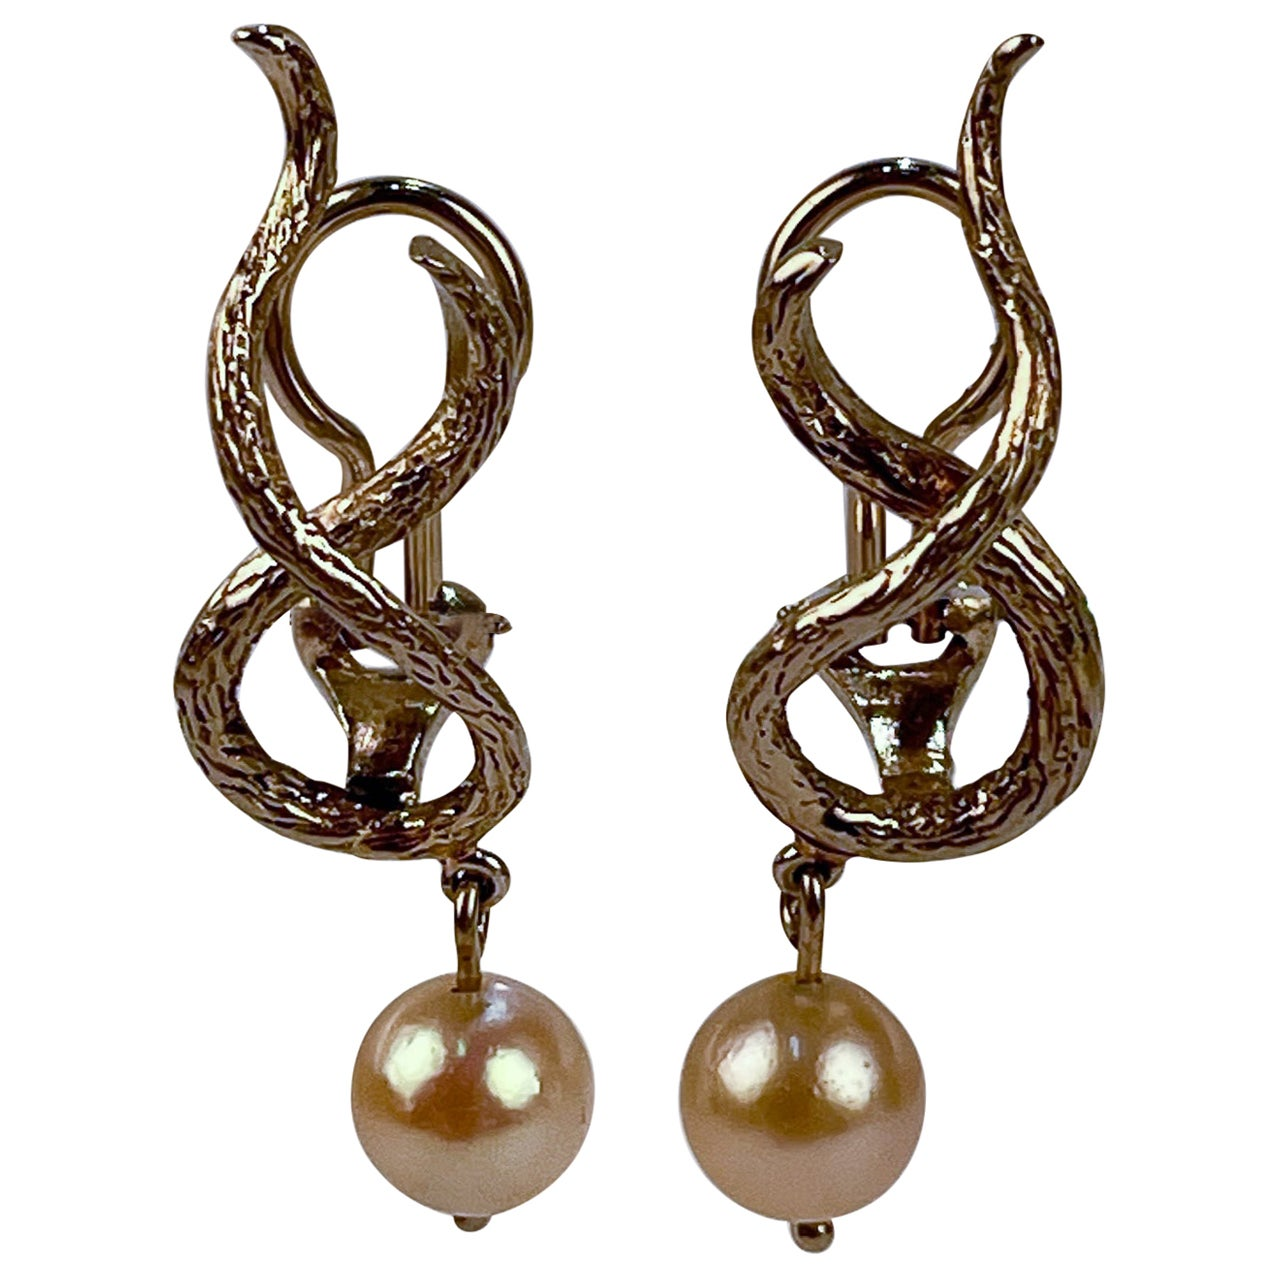 14 Karat Gold and Pearl Clip-On Earrings